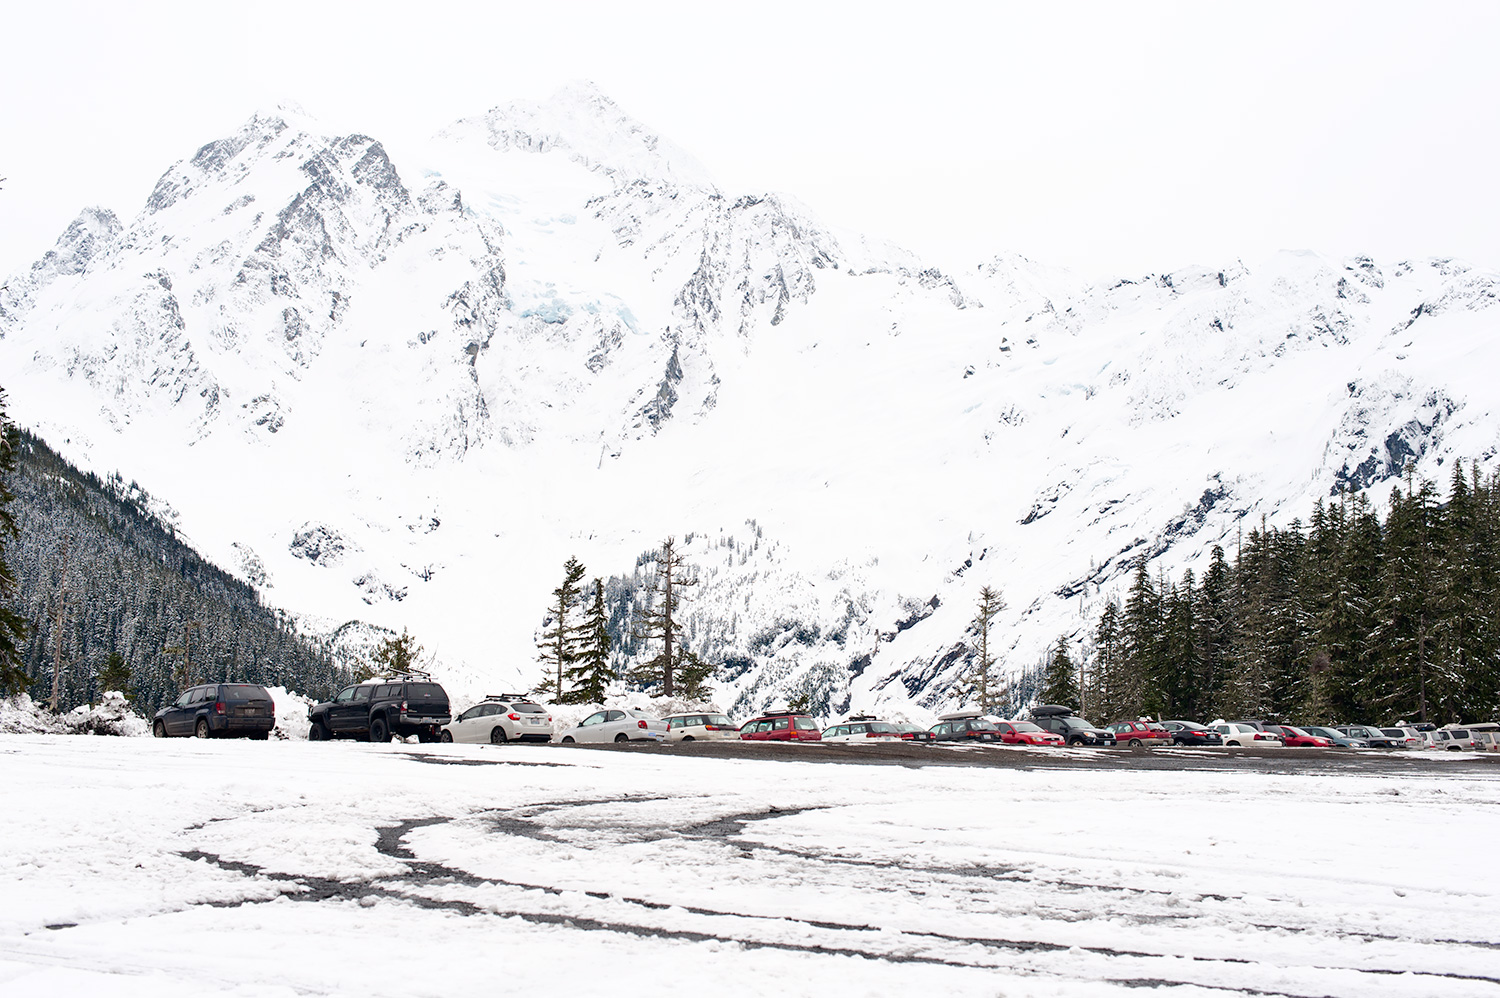 160309_mountains_and_cars_3135.jpg